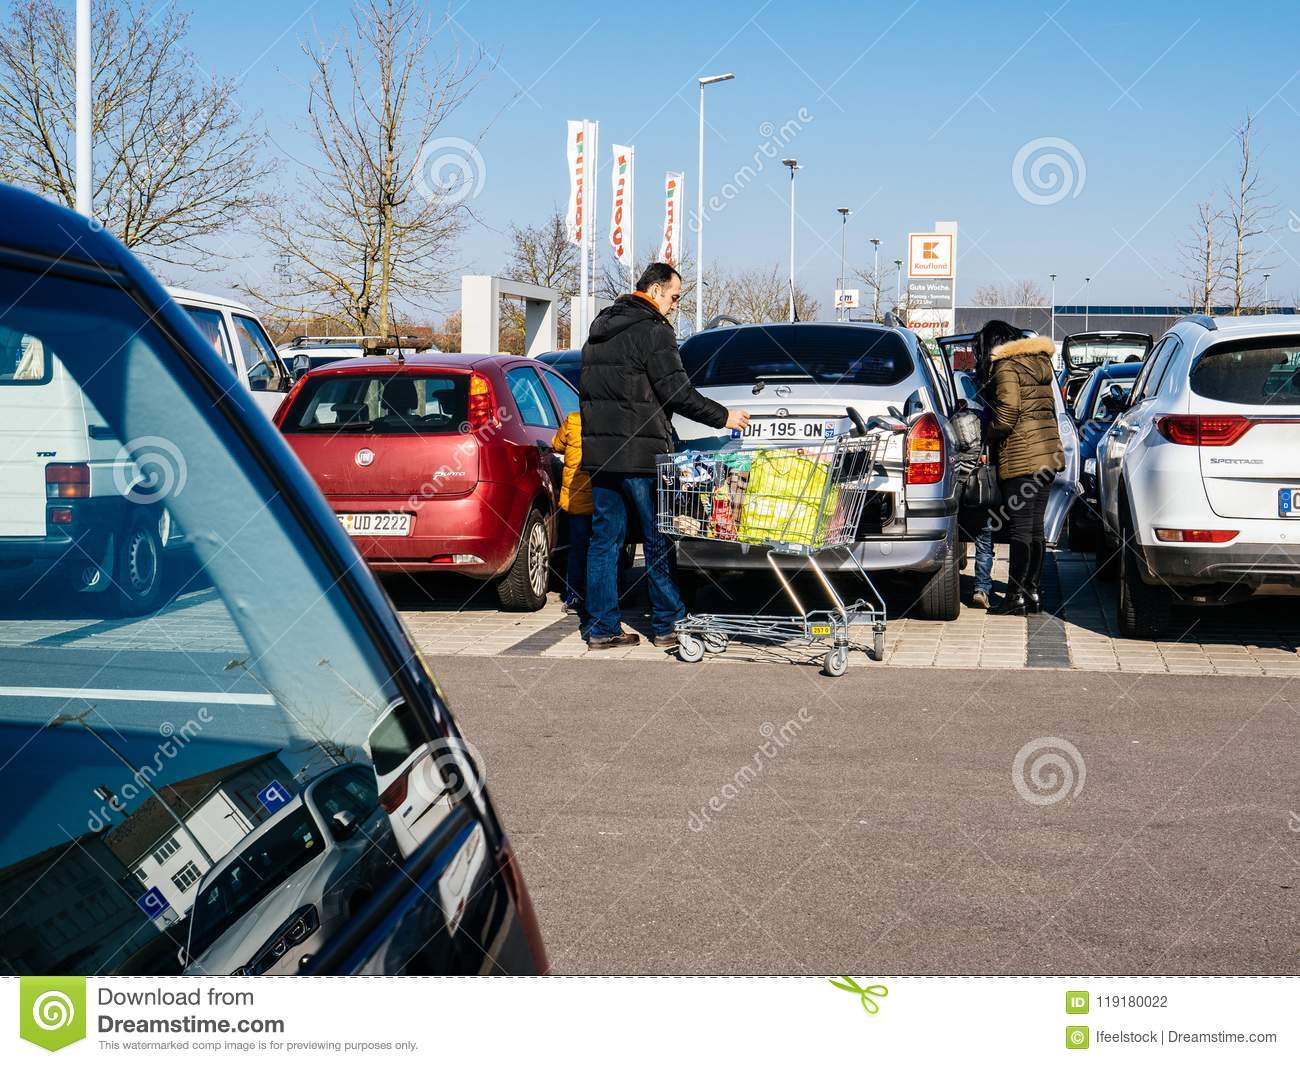 Family shopping for food in Kaufland supermarket parking